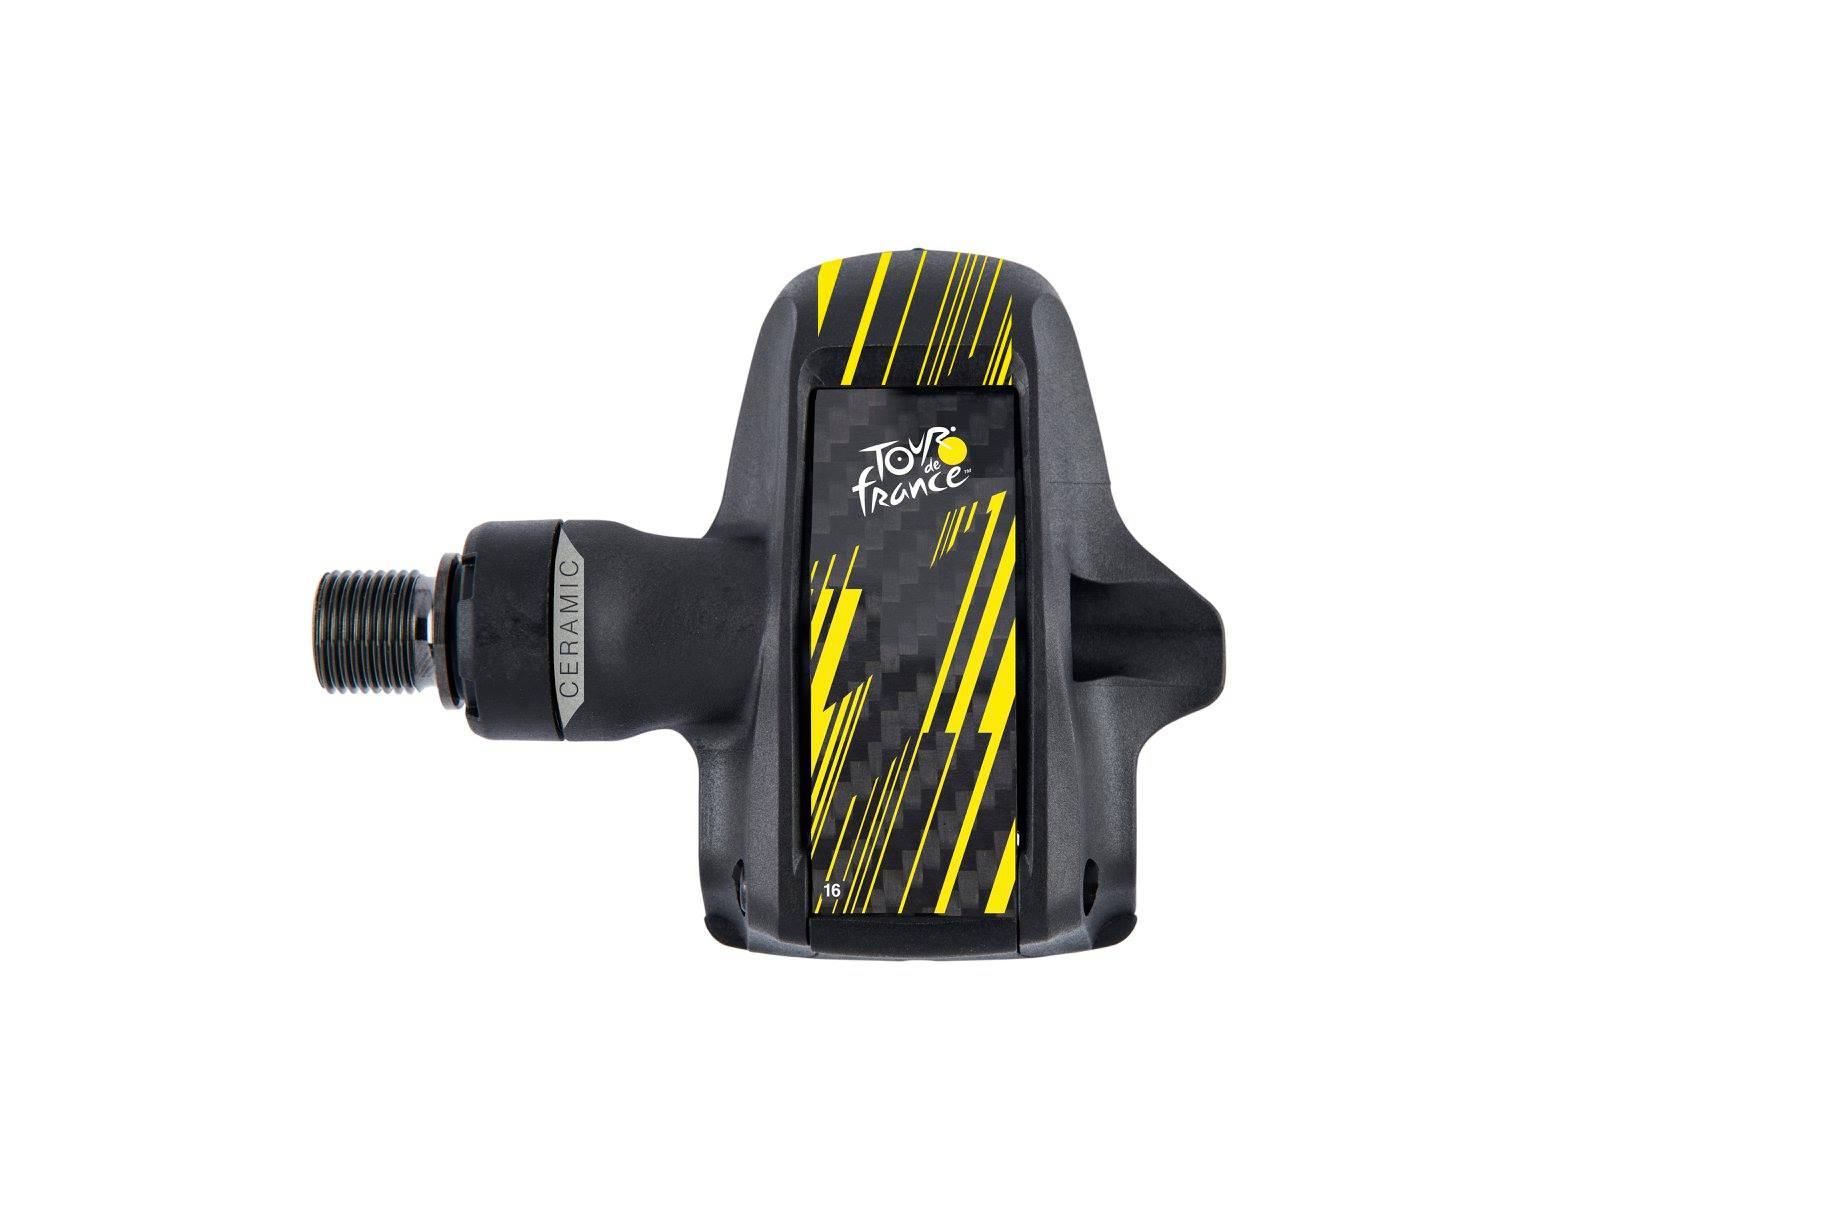 Capovelo Com Look Cycles Offers Tour De France Limited Edition Keo Blade Carbon Ceramic Pedals With Titanium Spindles